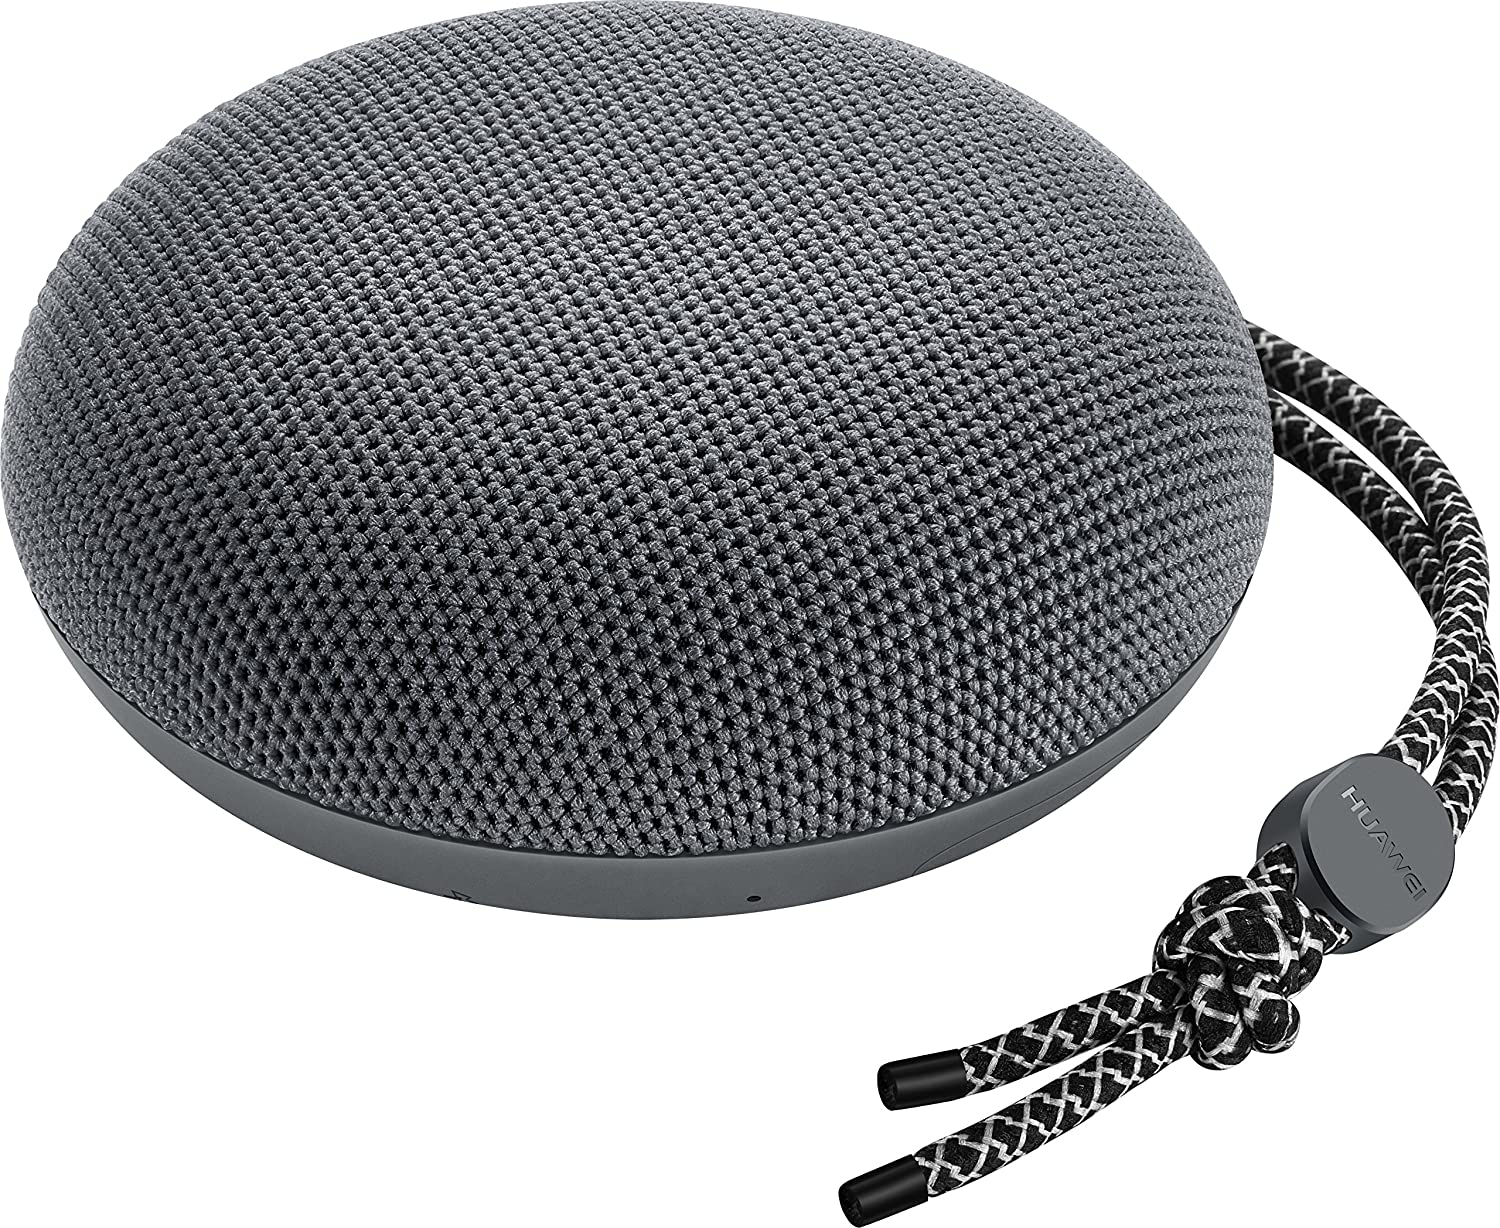 CPAZ13-104 HUAWEI Soundstone Portable Bluetooth Speaker grey CM51